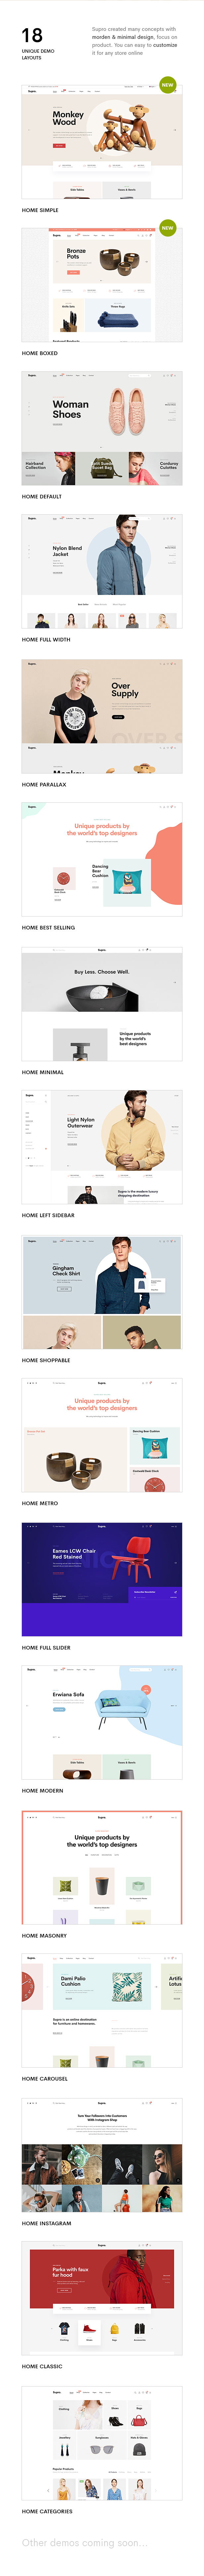 Supro - Minimalist AJAX WooCommerce WordPress Theme - 9